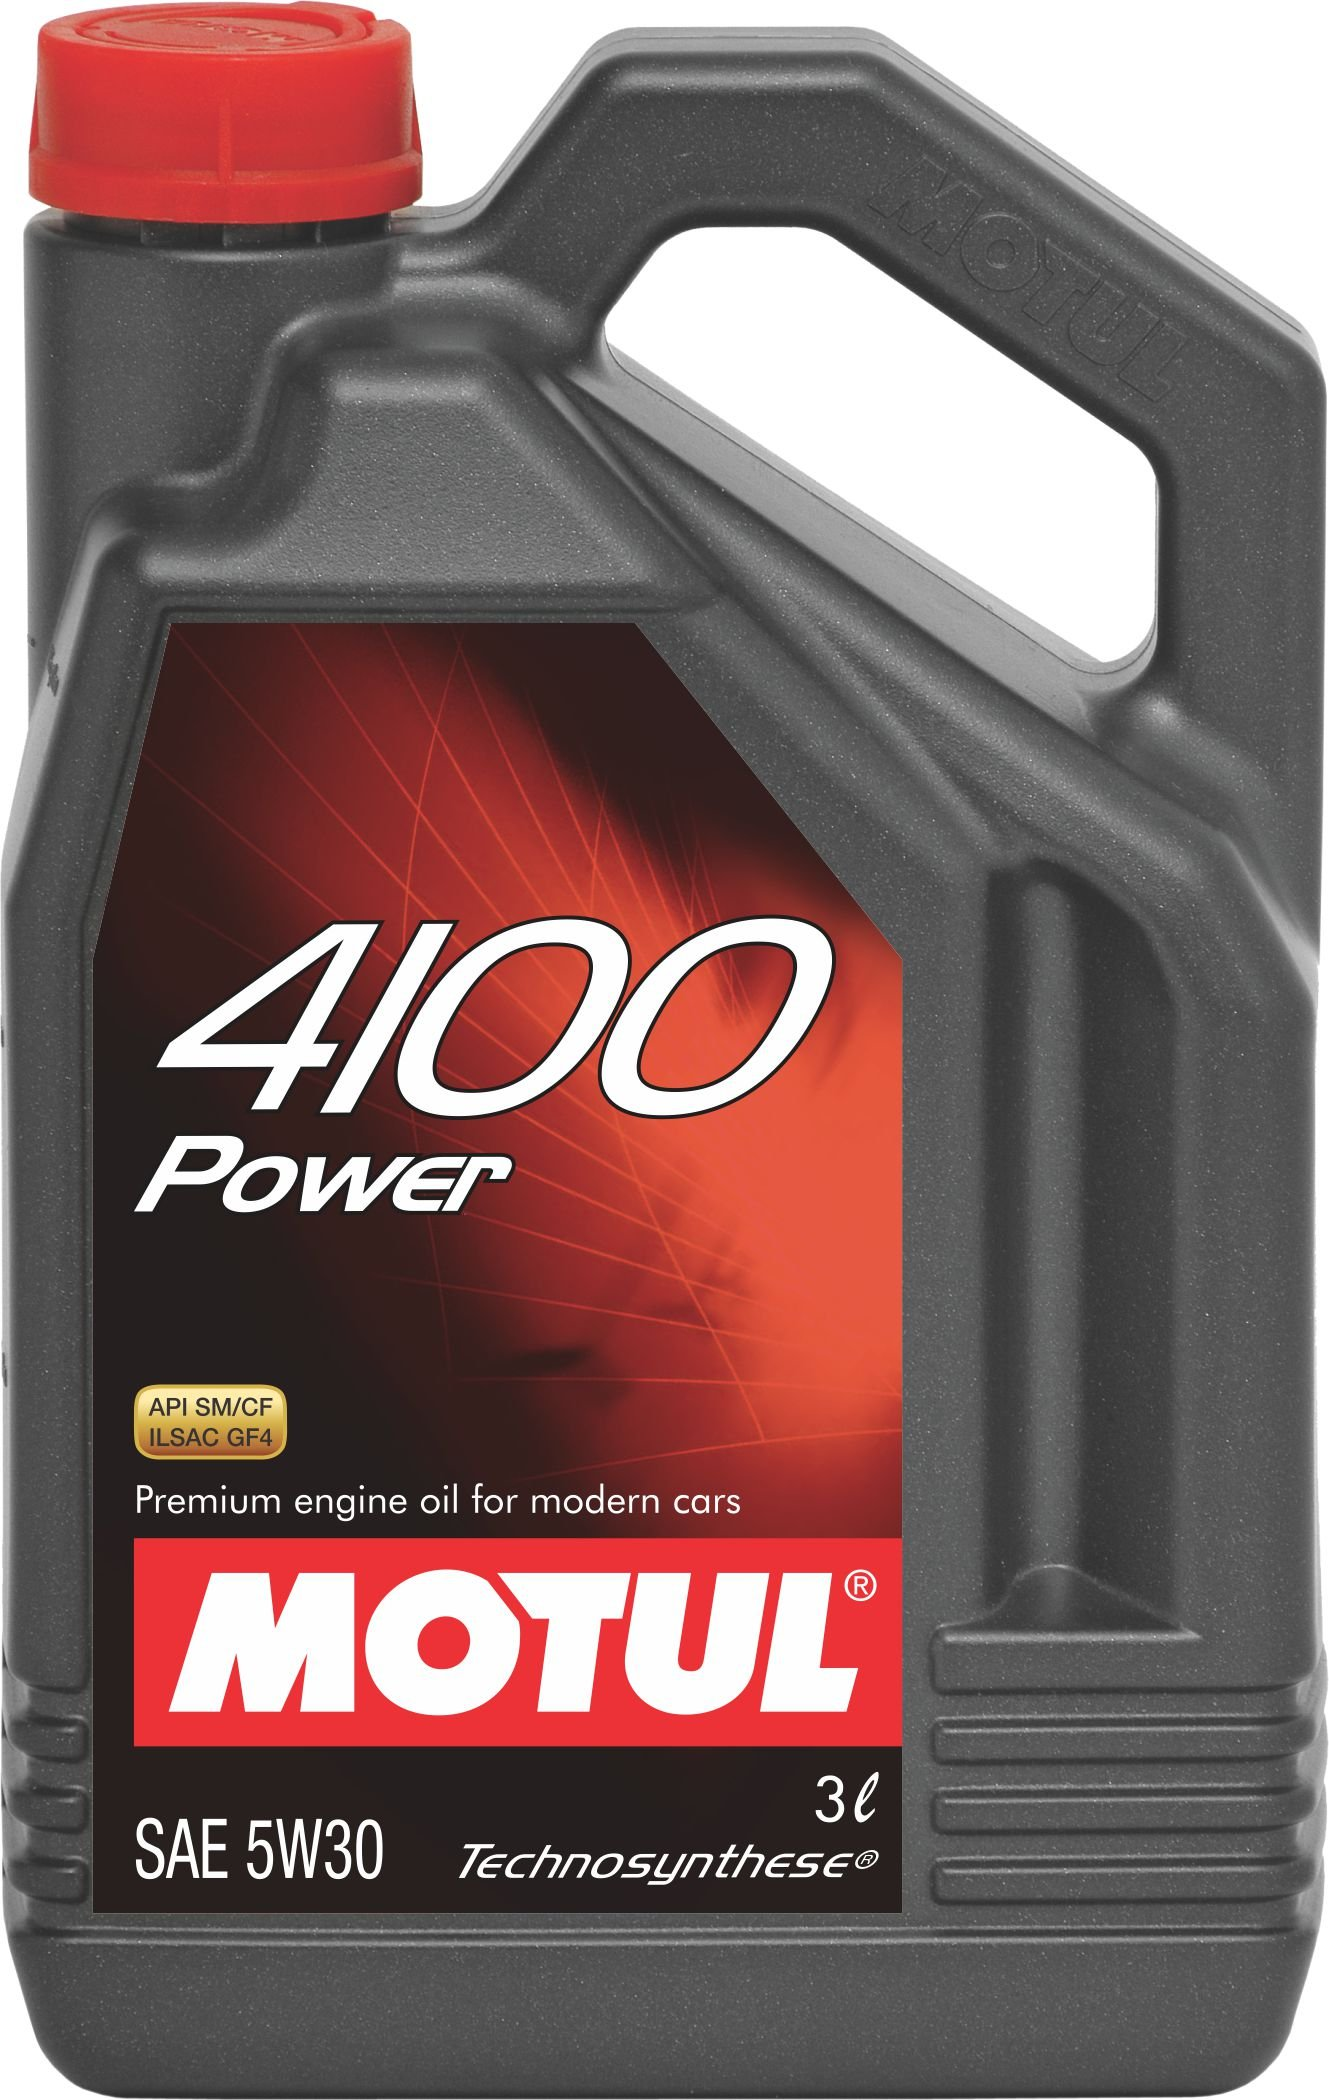 Motul 4100 Power SAE 5W30 Semi Synthetic Engine Oil for Cars (3 L) product image